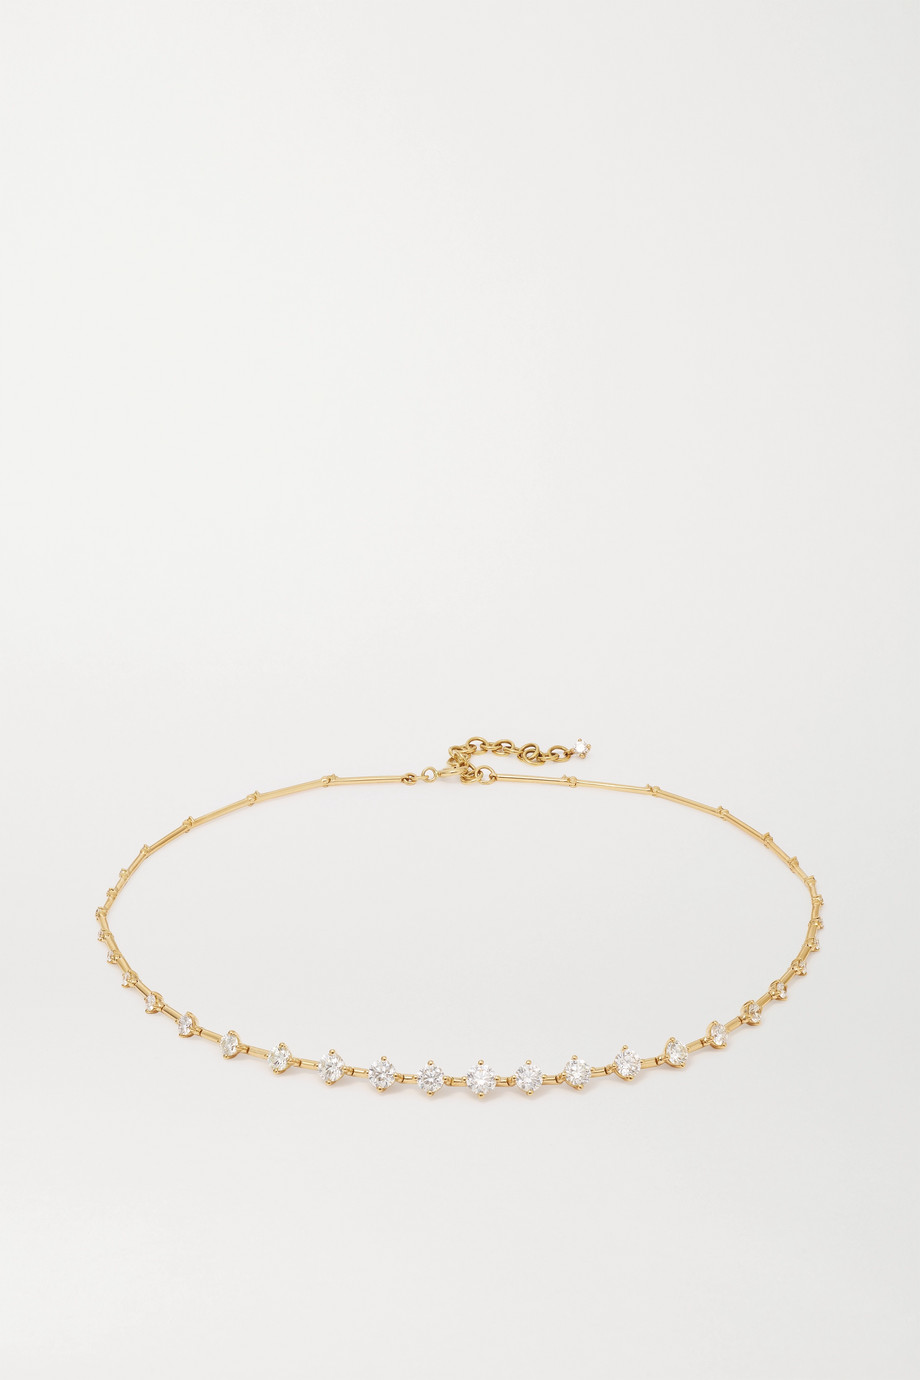 Fernando Jorge Sequence 18-karat gold diamond necklace